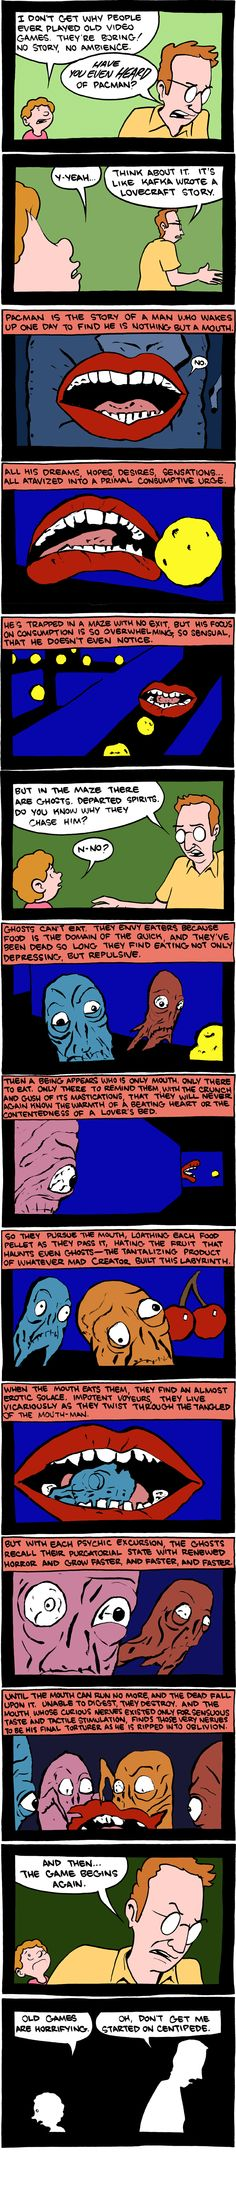 Pacman - Saturday Morning Breakfast Cereal